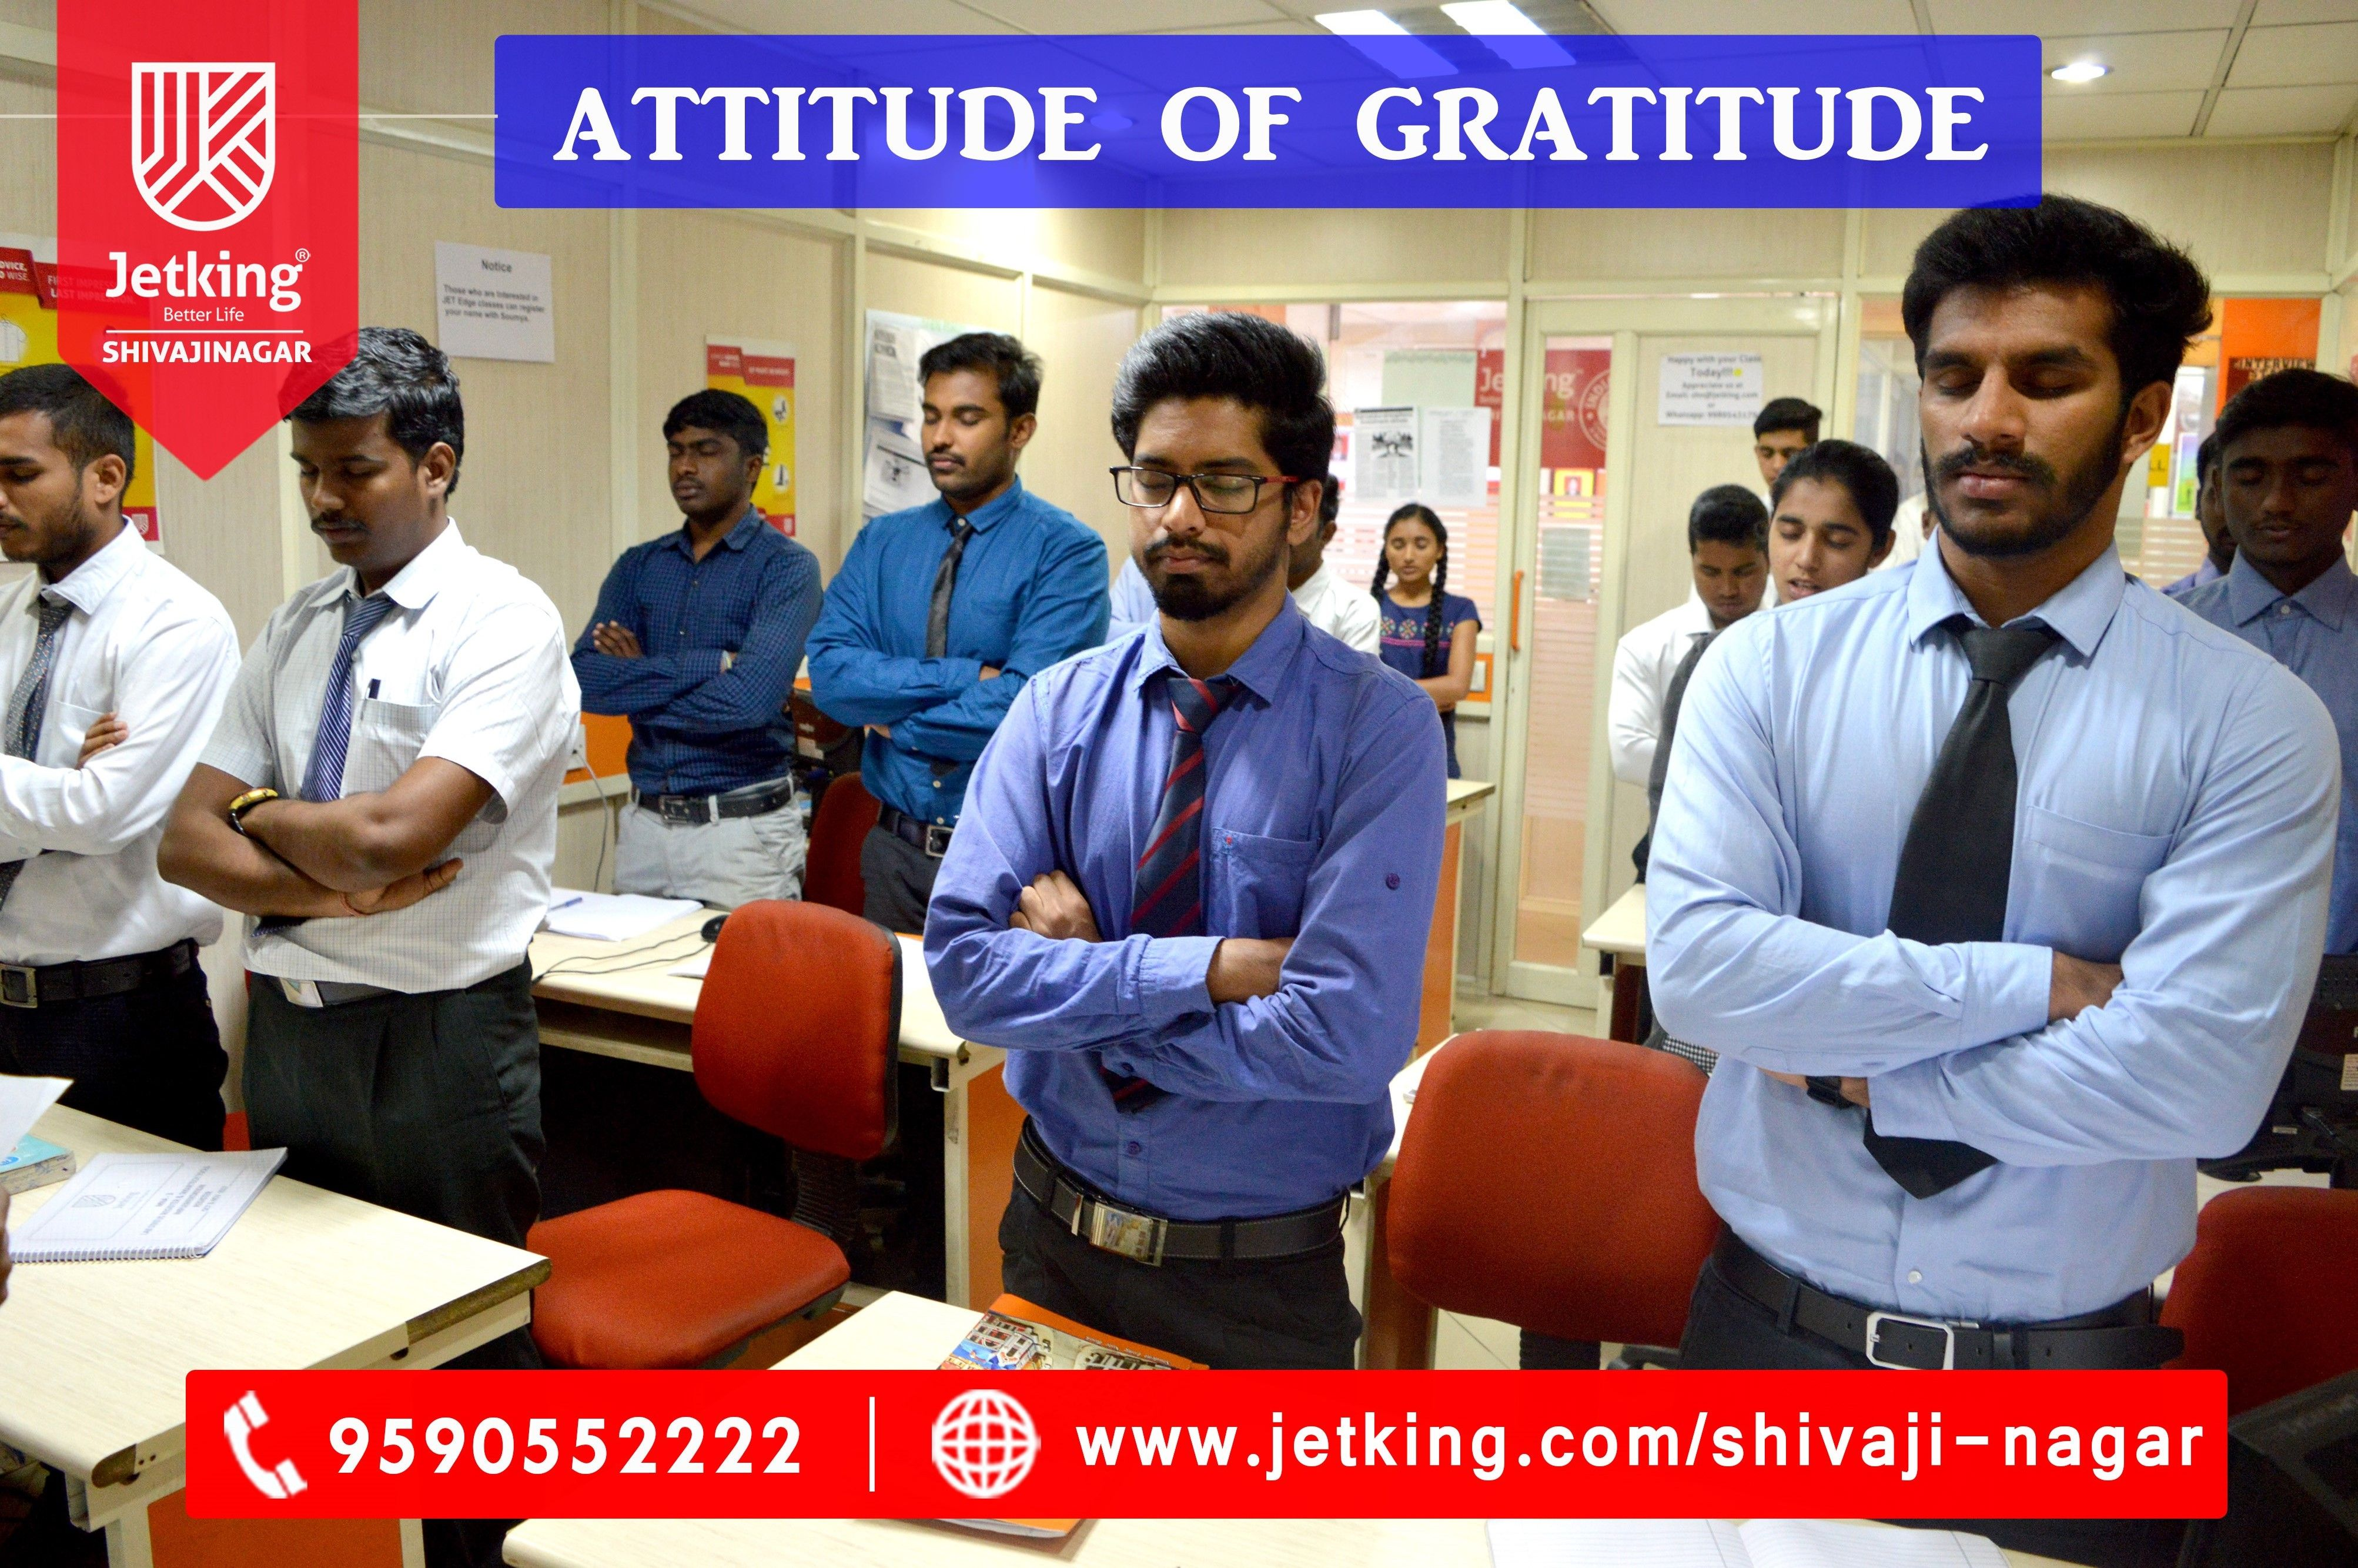 Pin By Jetking On Attitude Of Gratitude